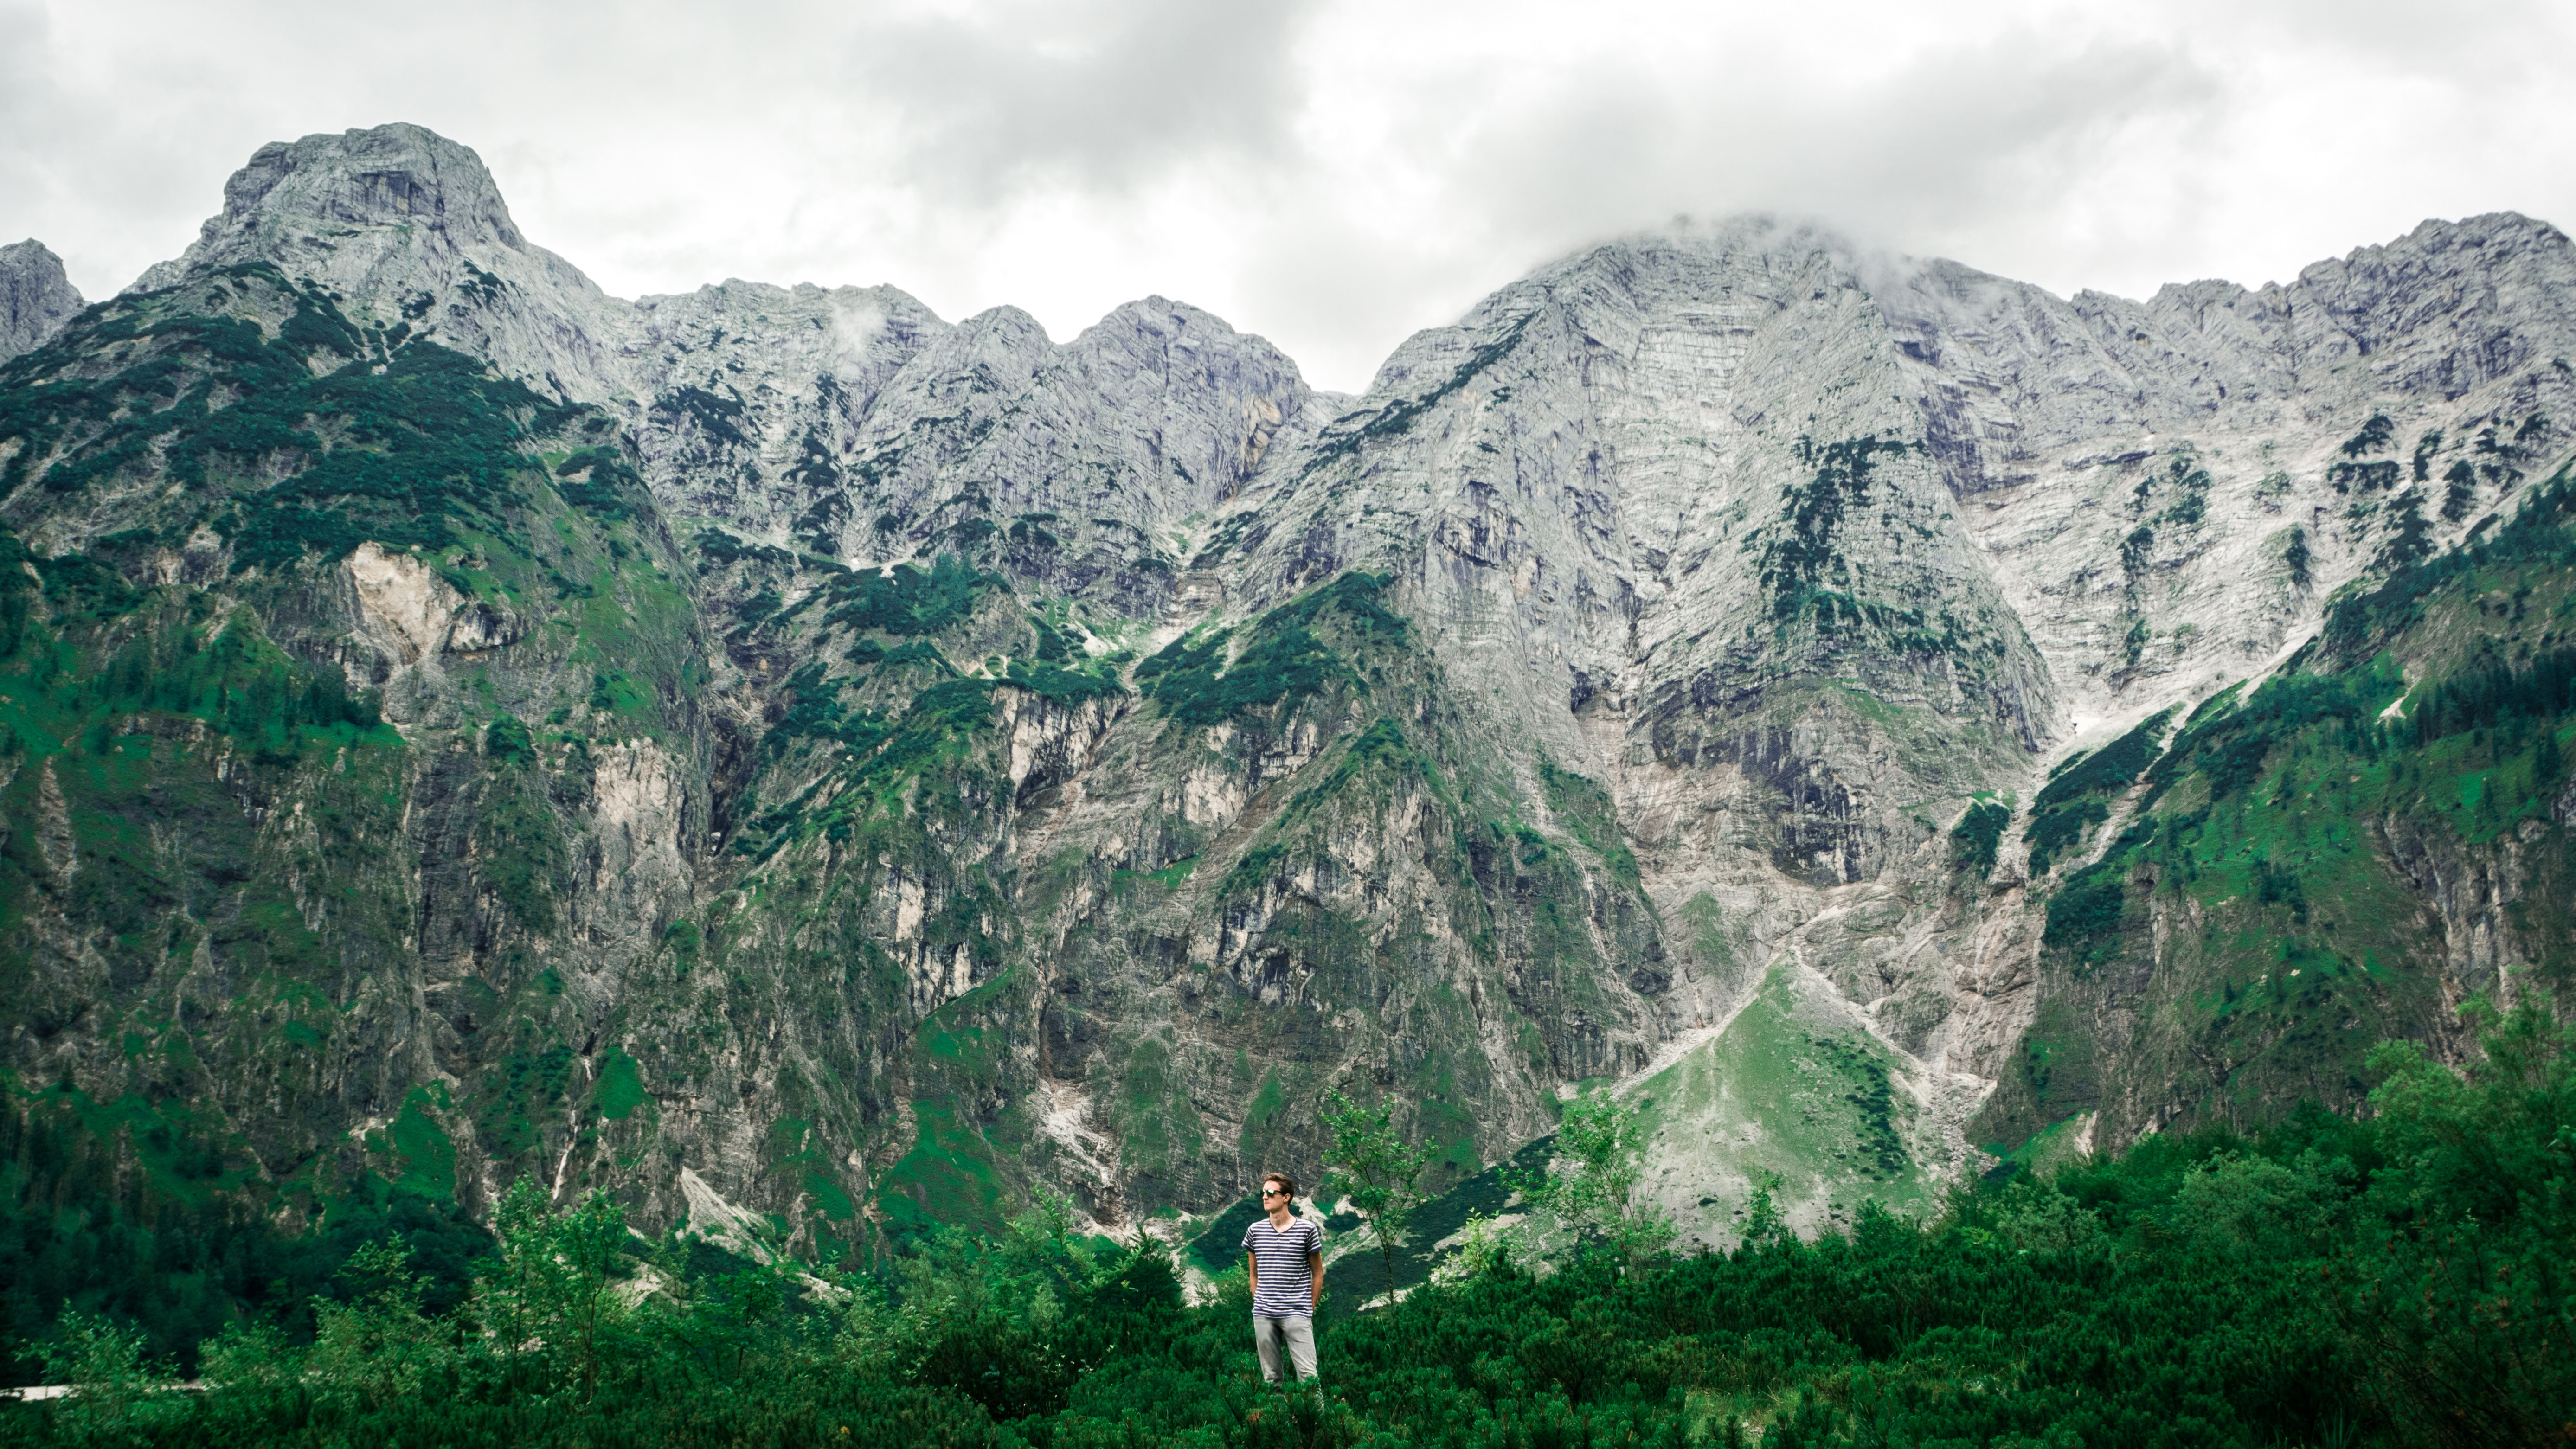 man standing near mountains surrounded with trees